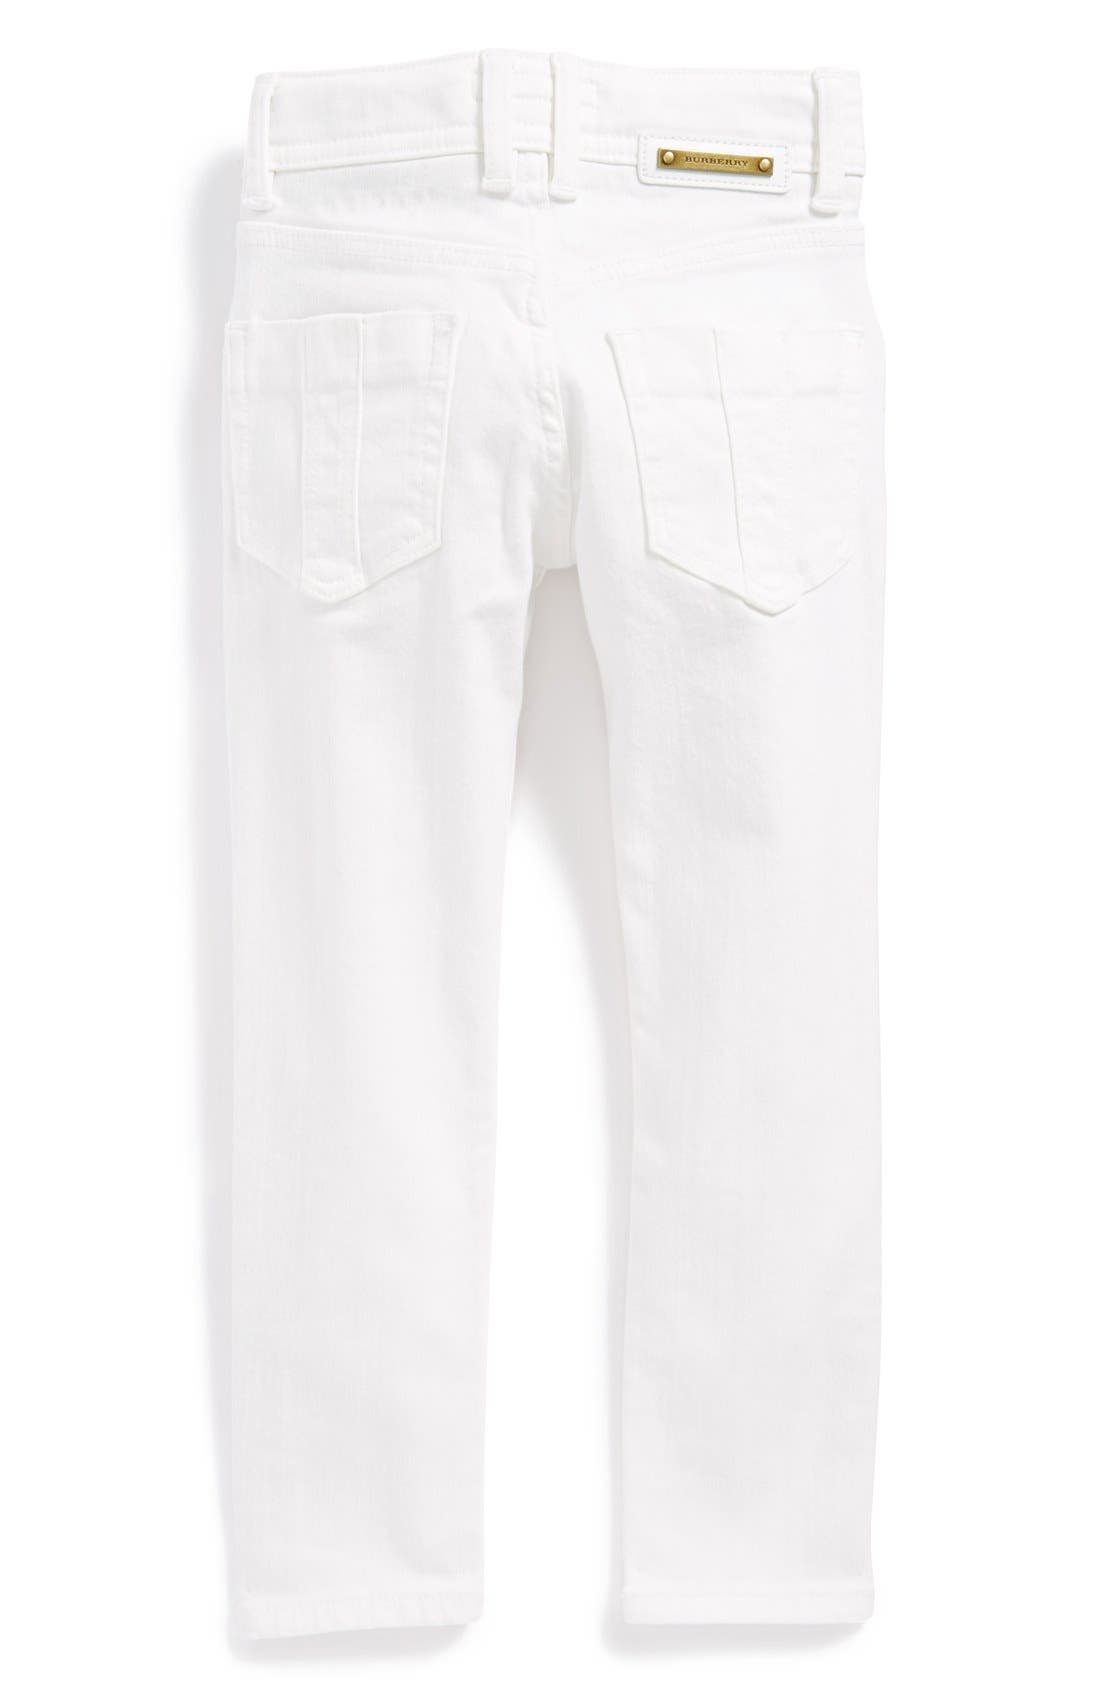 Main Image - Burberry 'Piccadilly' Skinny Jeans (Toddler Girls, Little Girls & Big Girls)